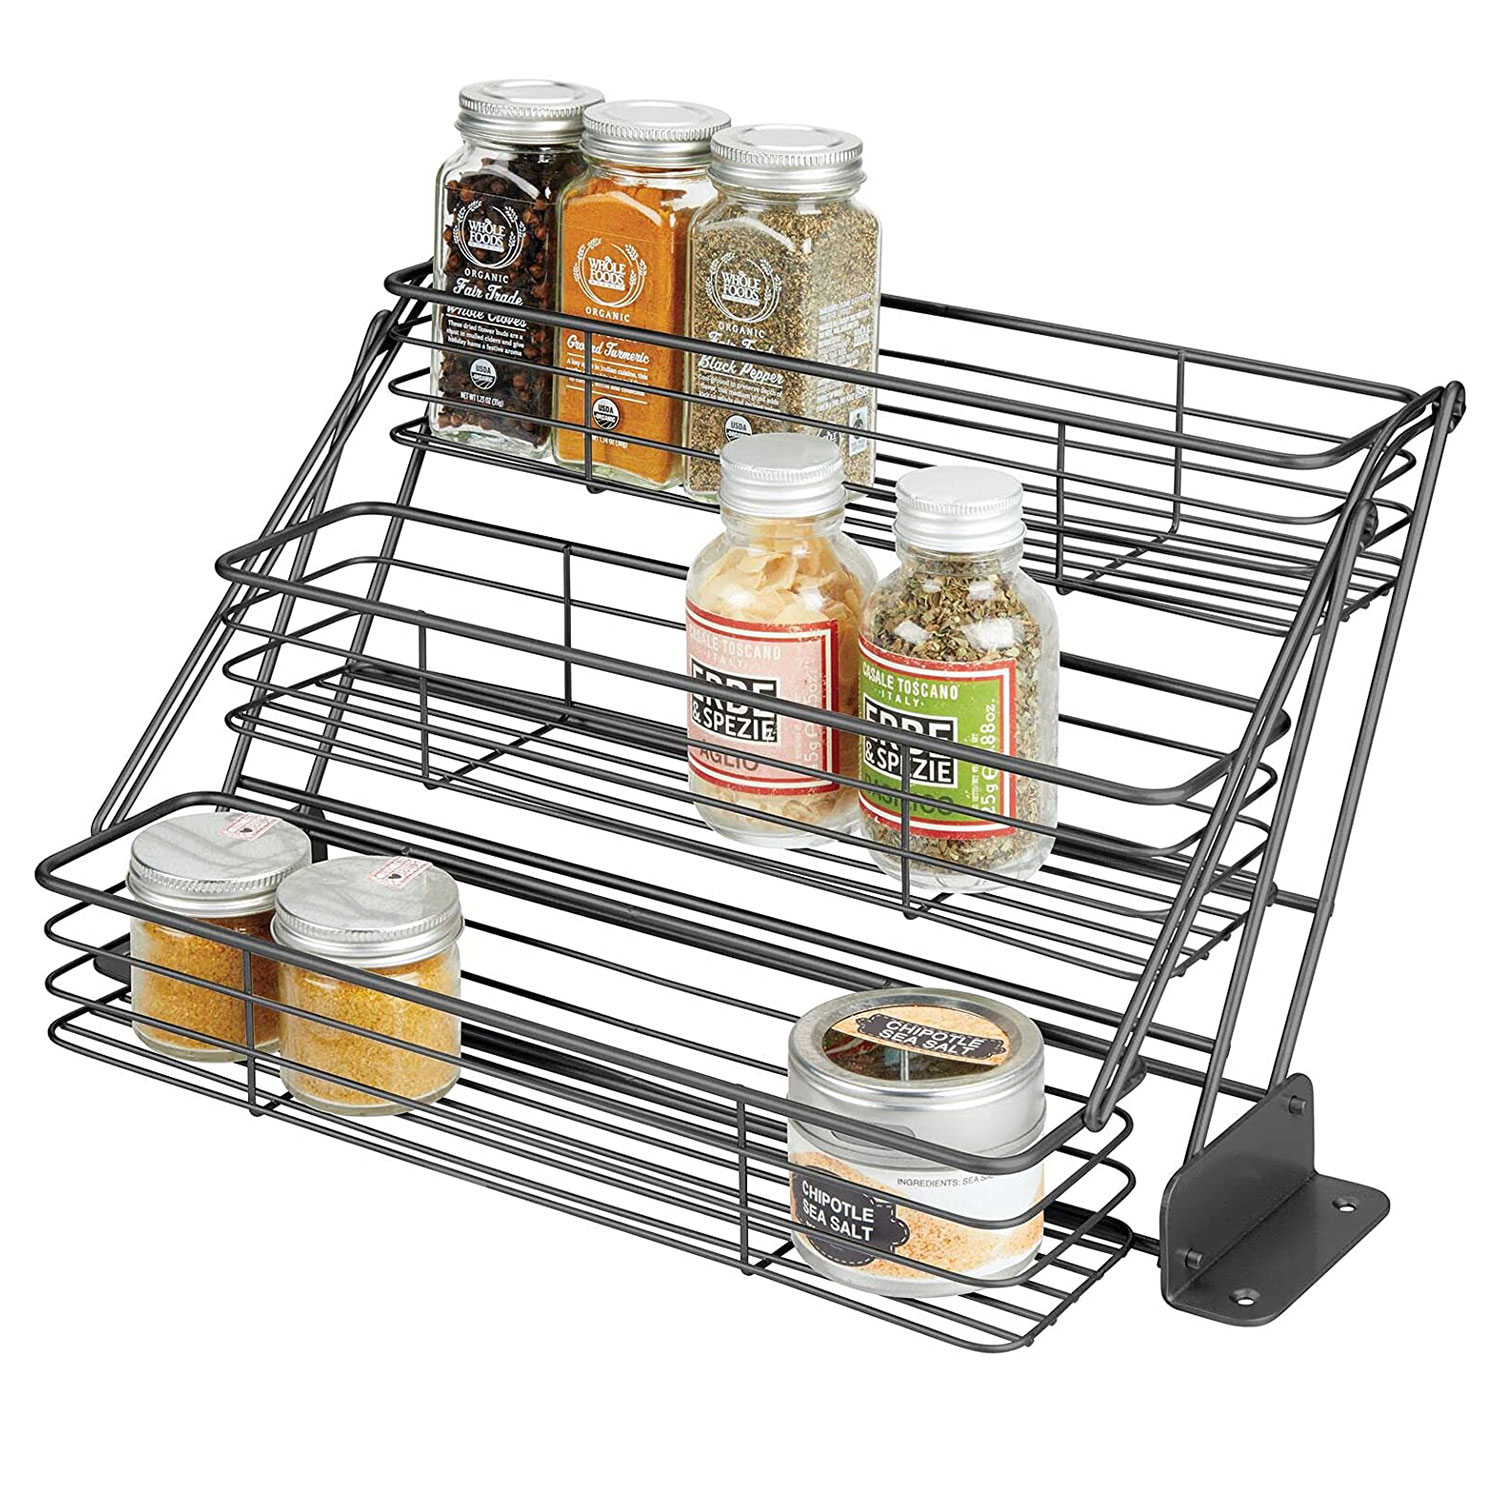 mDesign Metal 3-Tier Pull Down Spice Rack